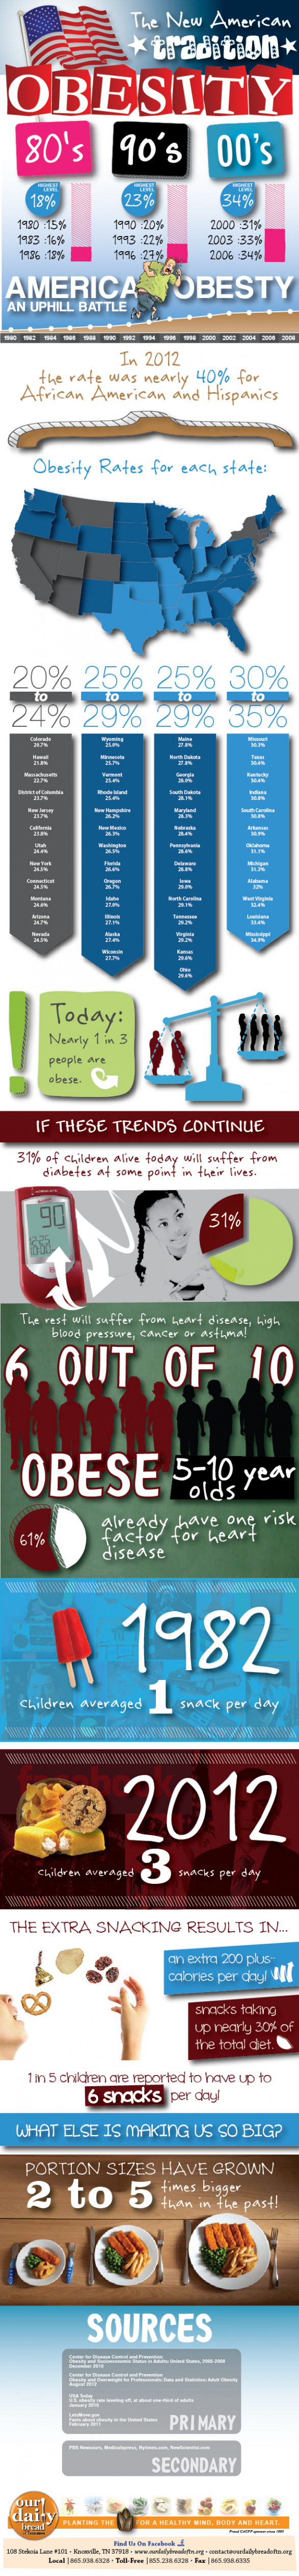 the new american tradition obesity 503e68b2a0f71 w587 Did You Know You May Be Obese?[Infographic]